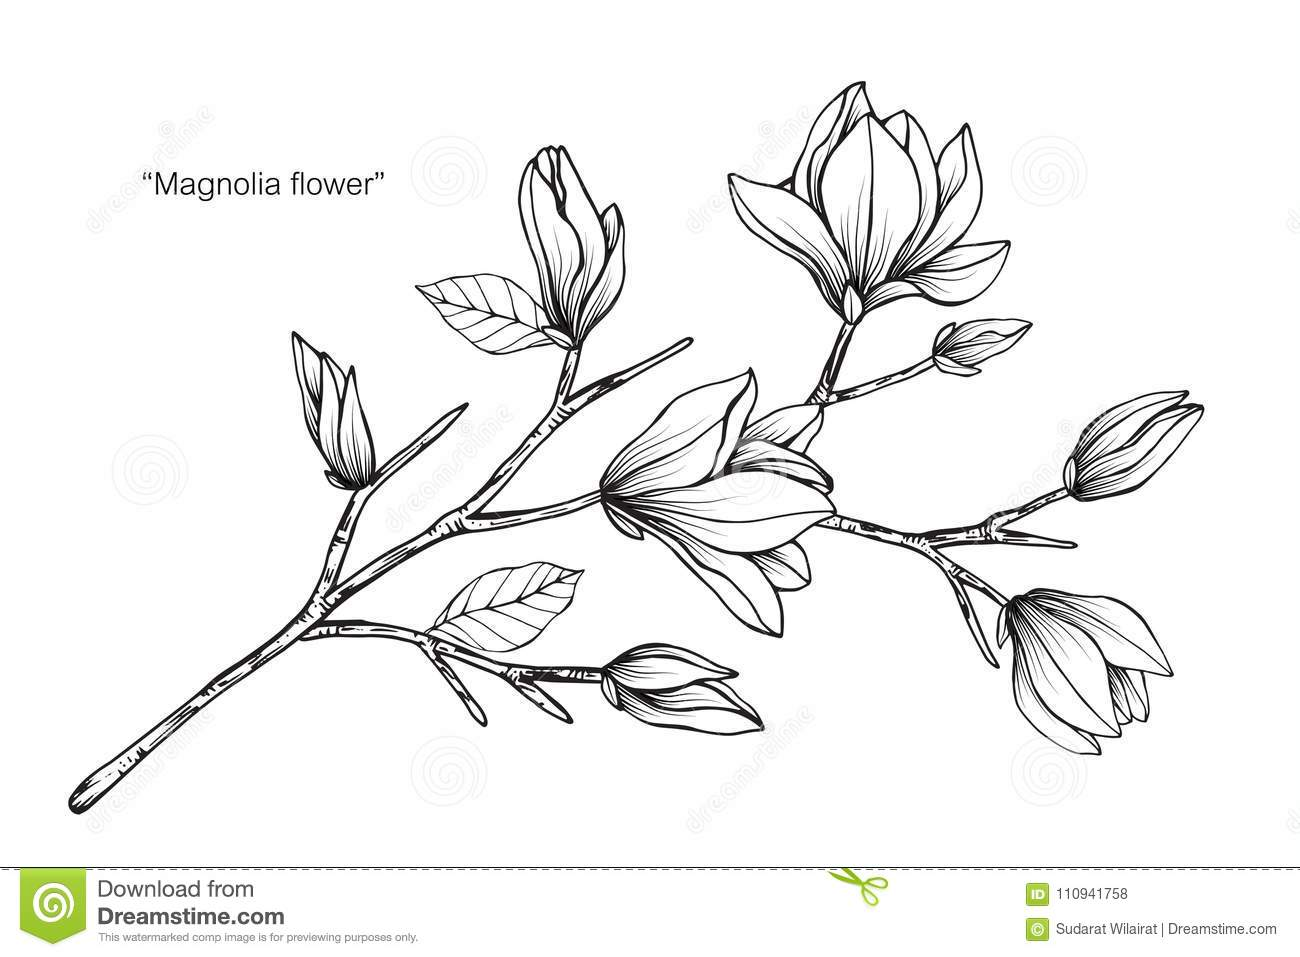 Magnolia Flower Drawing Illustration Black And White With Line Art